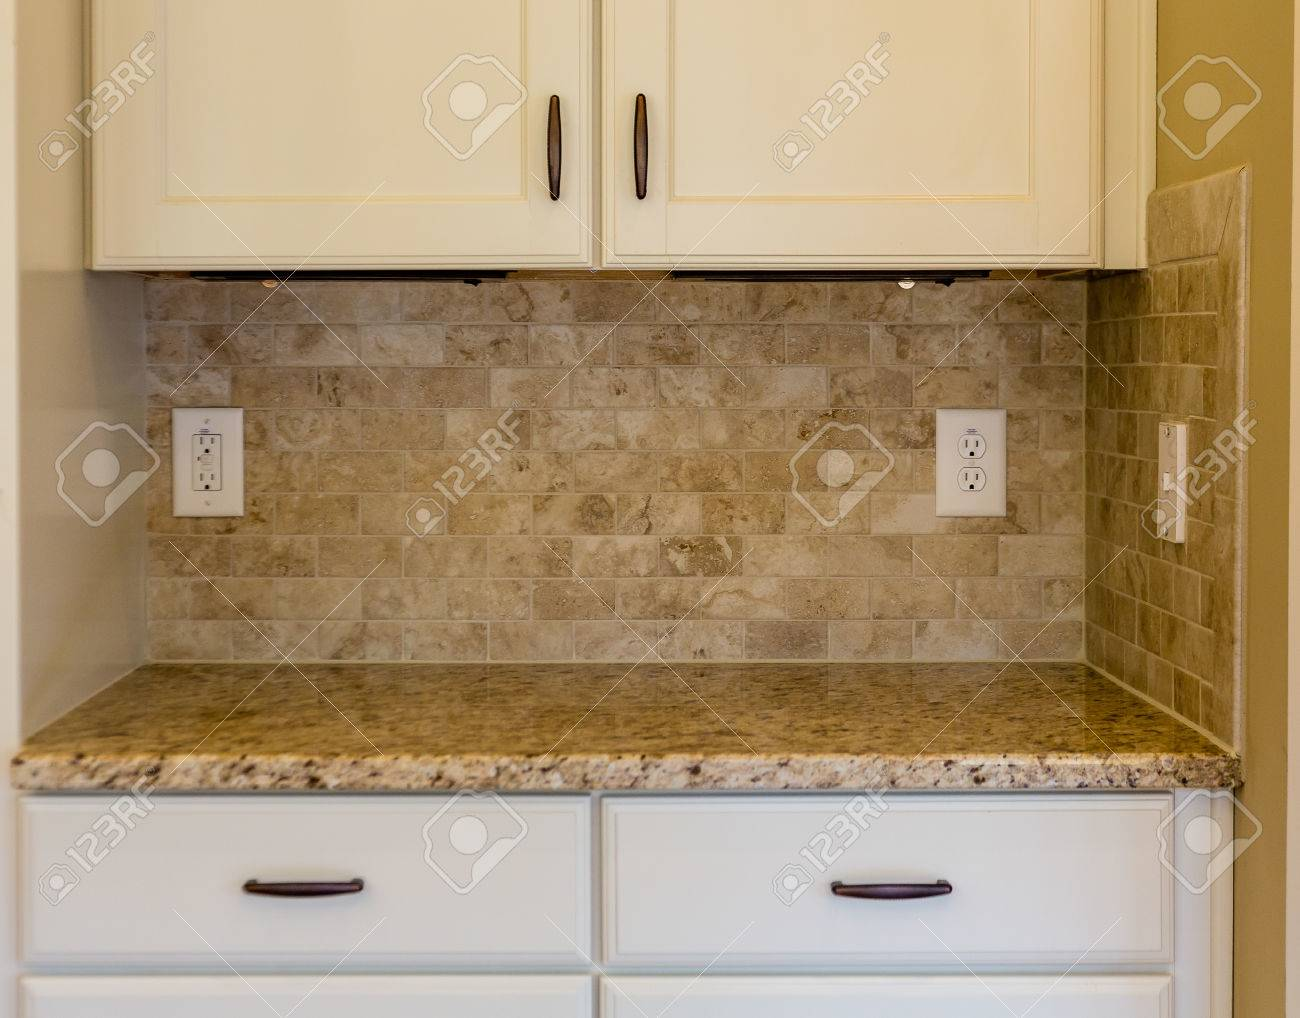 - Granite Countertops And Tile Backsplash On White Cabinets In